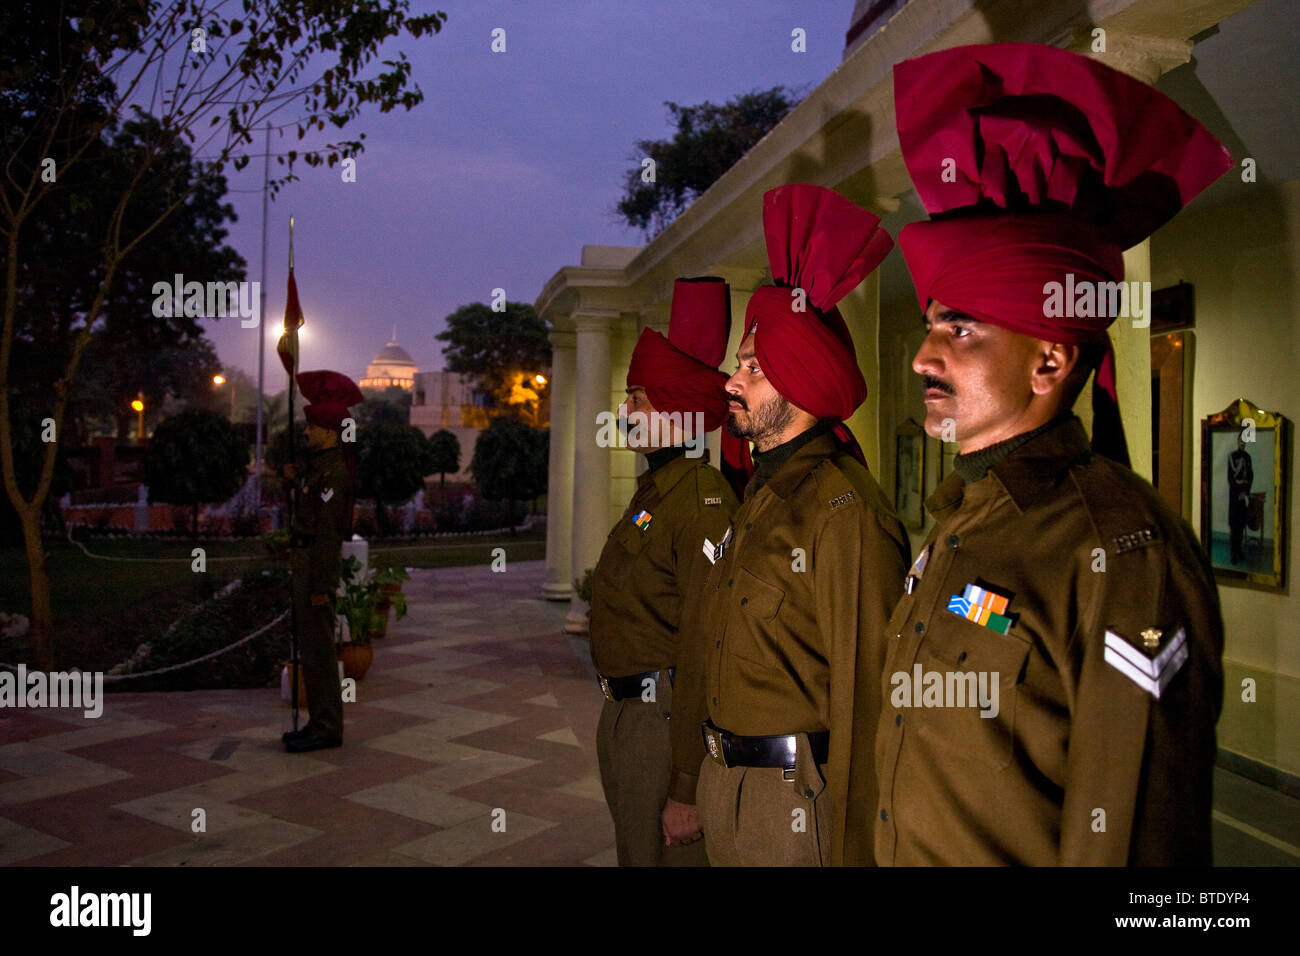 Presidential Bodyguard soldiers on sentry duty at their HQ's with the Rashtrapati Bhavan Palace in background. - Stock Image